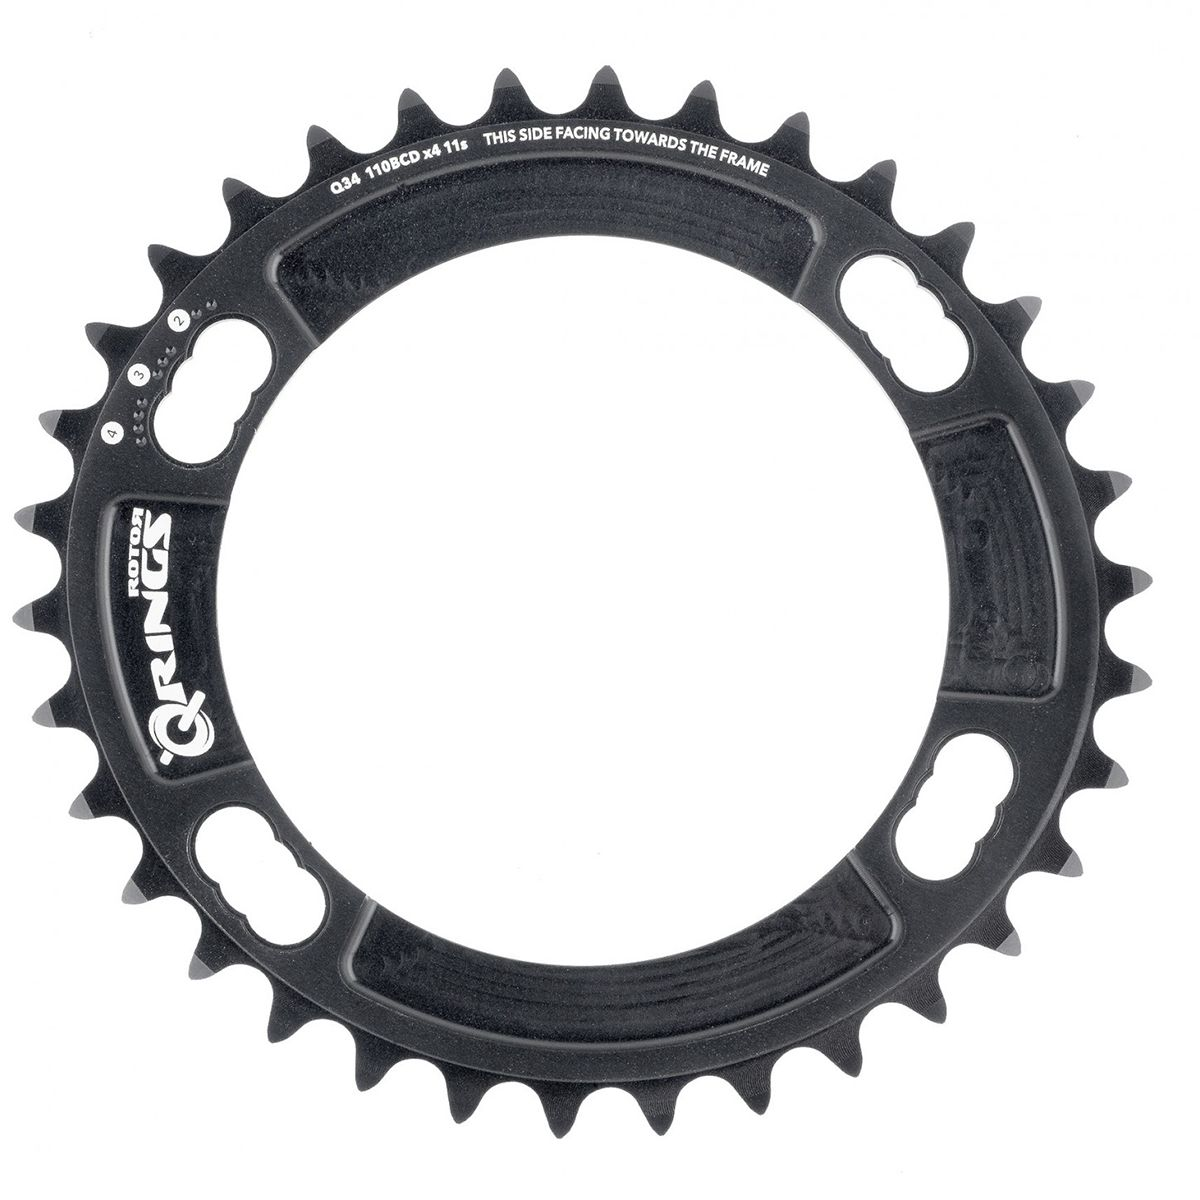 Q-Rings Shimano 4-arm Road chainring